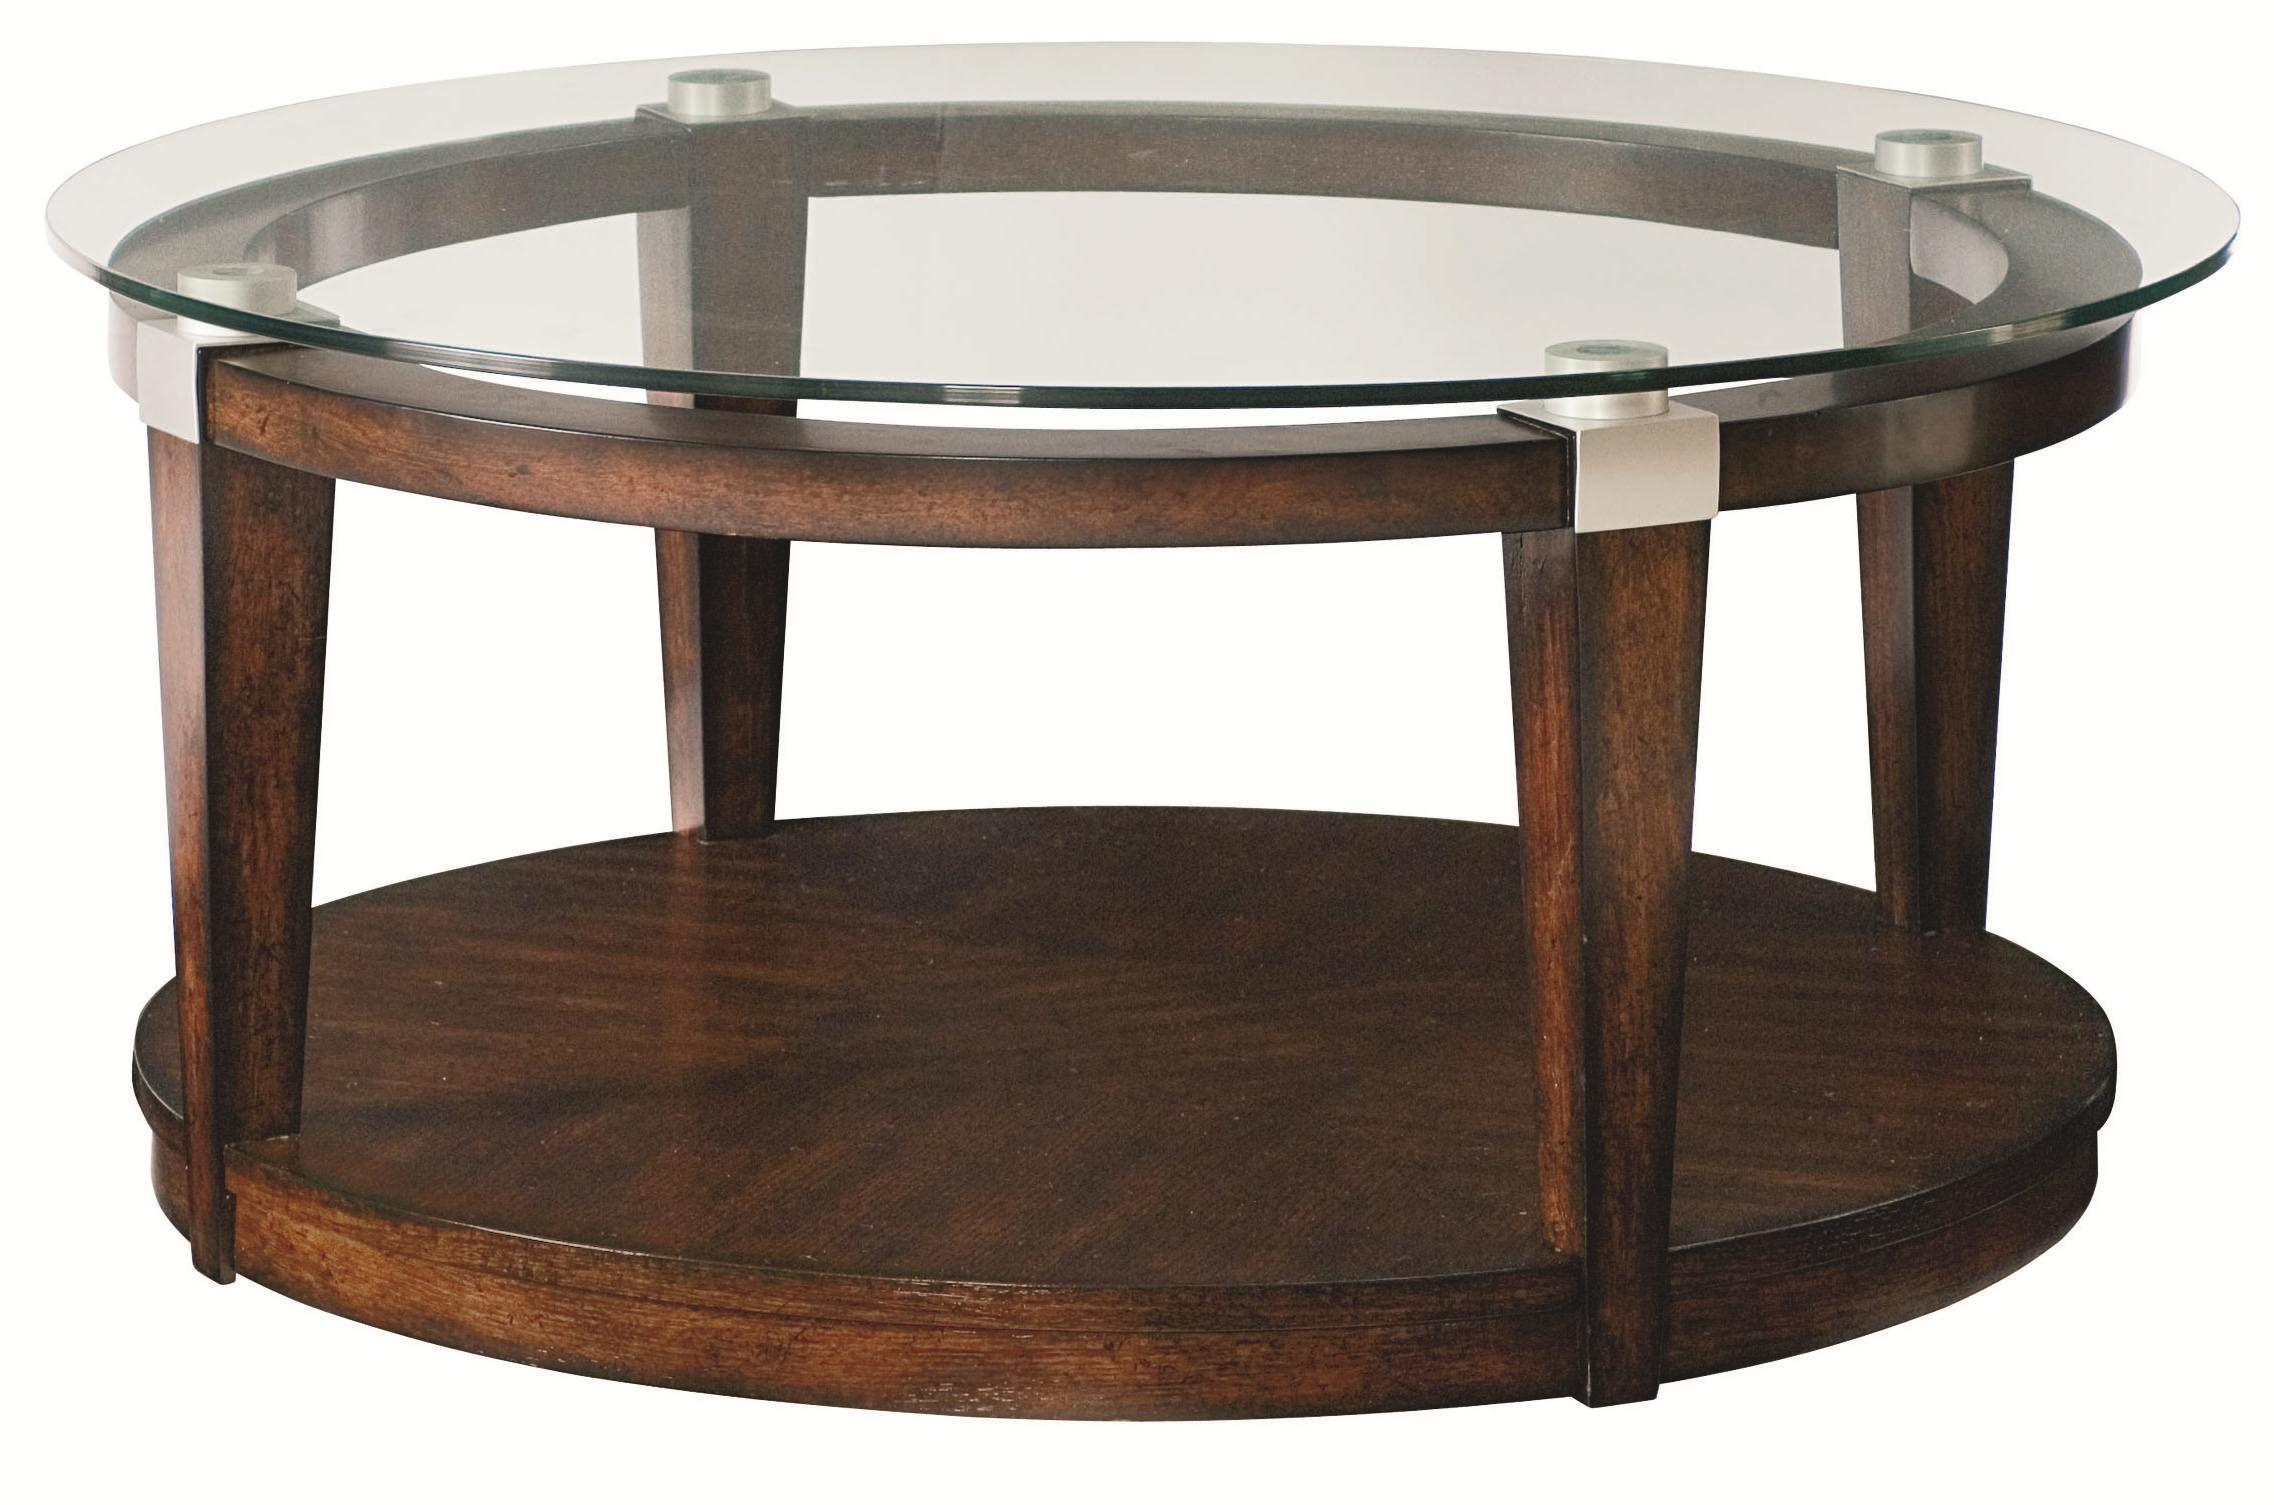 Round Glass Top Coffee Table Solitaire Contemporary Round Coffee Table With Glass Top By Hammary At Wayside Furniture